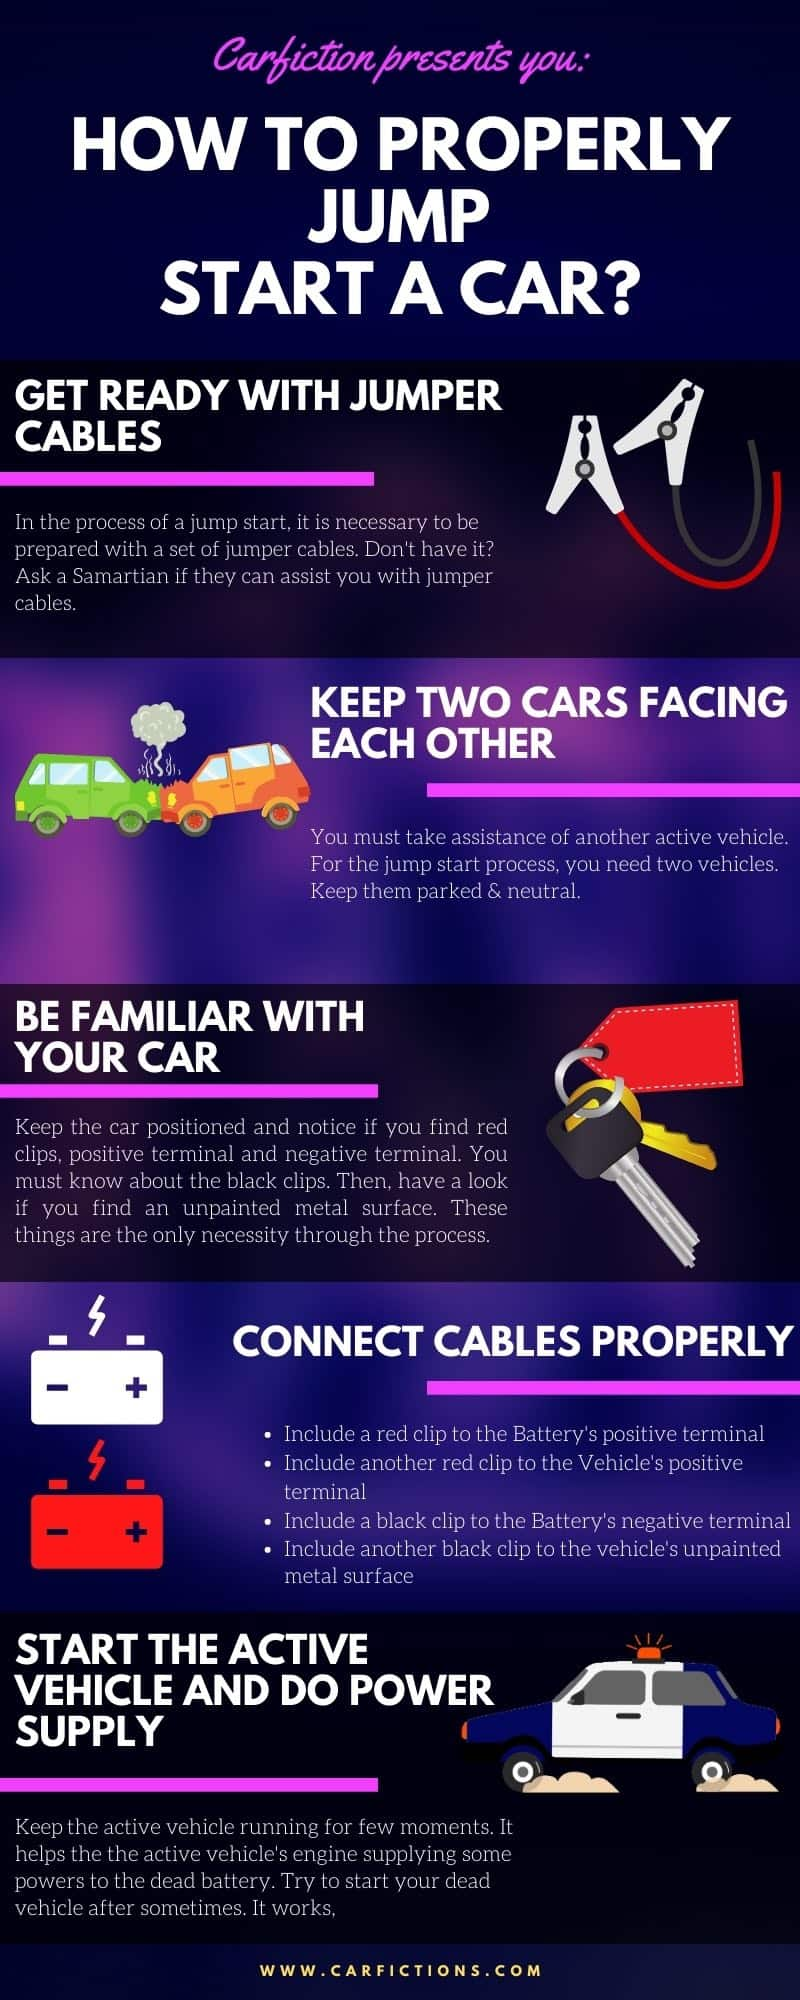 infographic How to Properly Jump Start a Car